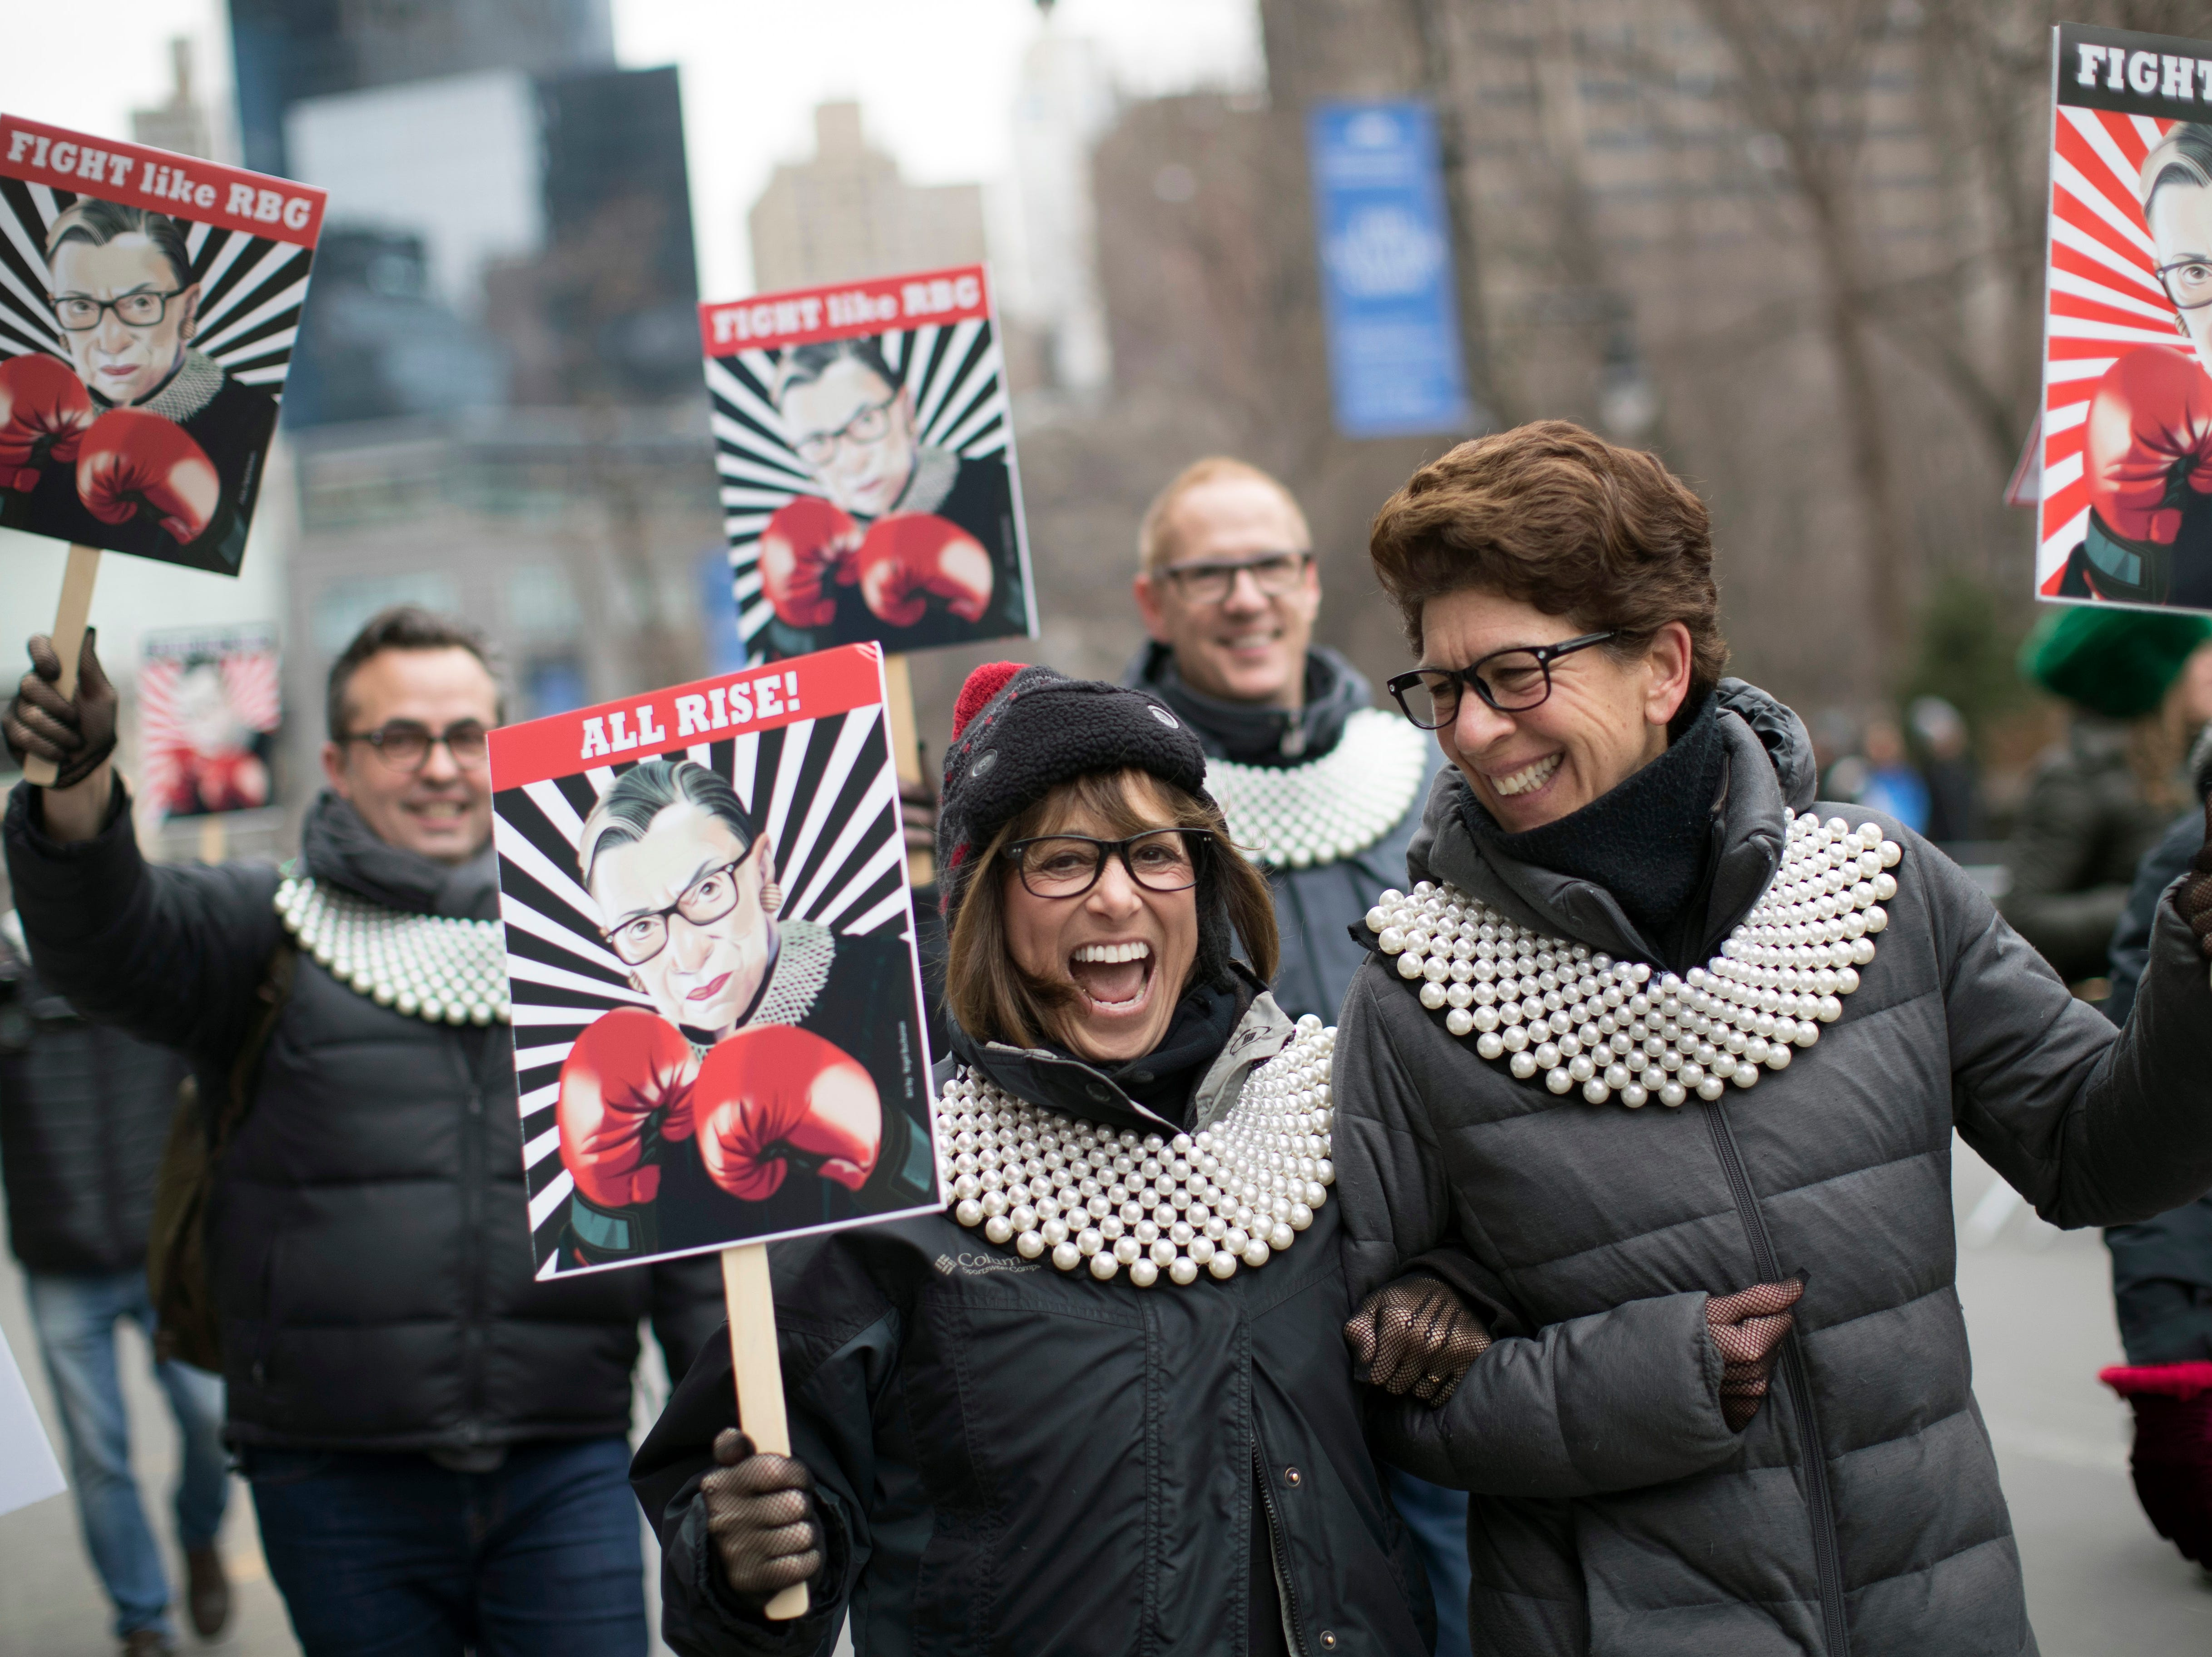 Supporters of Justice Ruth Bader Ginsburg march in during the Women's March Alliance, Saturday, Jan. 19, 2019, in New York. One procession, a march through midtown Manhattan, is being organized by the Women's March Alliance, a nonprofit group whose leaders are putting on their demonstration for the third straight year. Another event, a downtown Manhattan rally held at roughly the same time Saturday, is being organized by the New York City chapter of Women's March Inc., the group formed to help organize the 2017 demonstration in Washington, D.C.